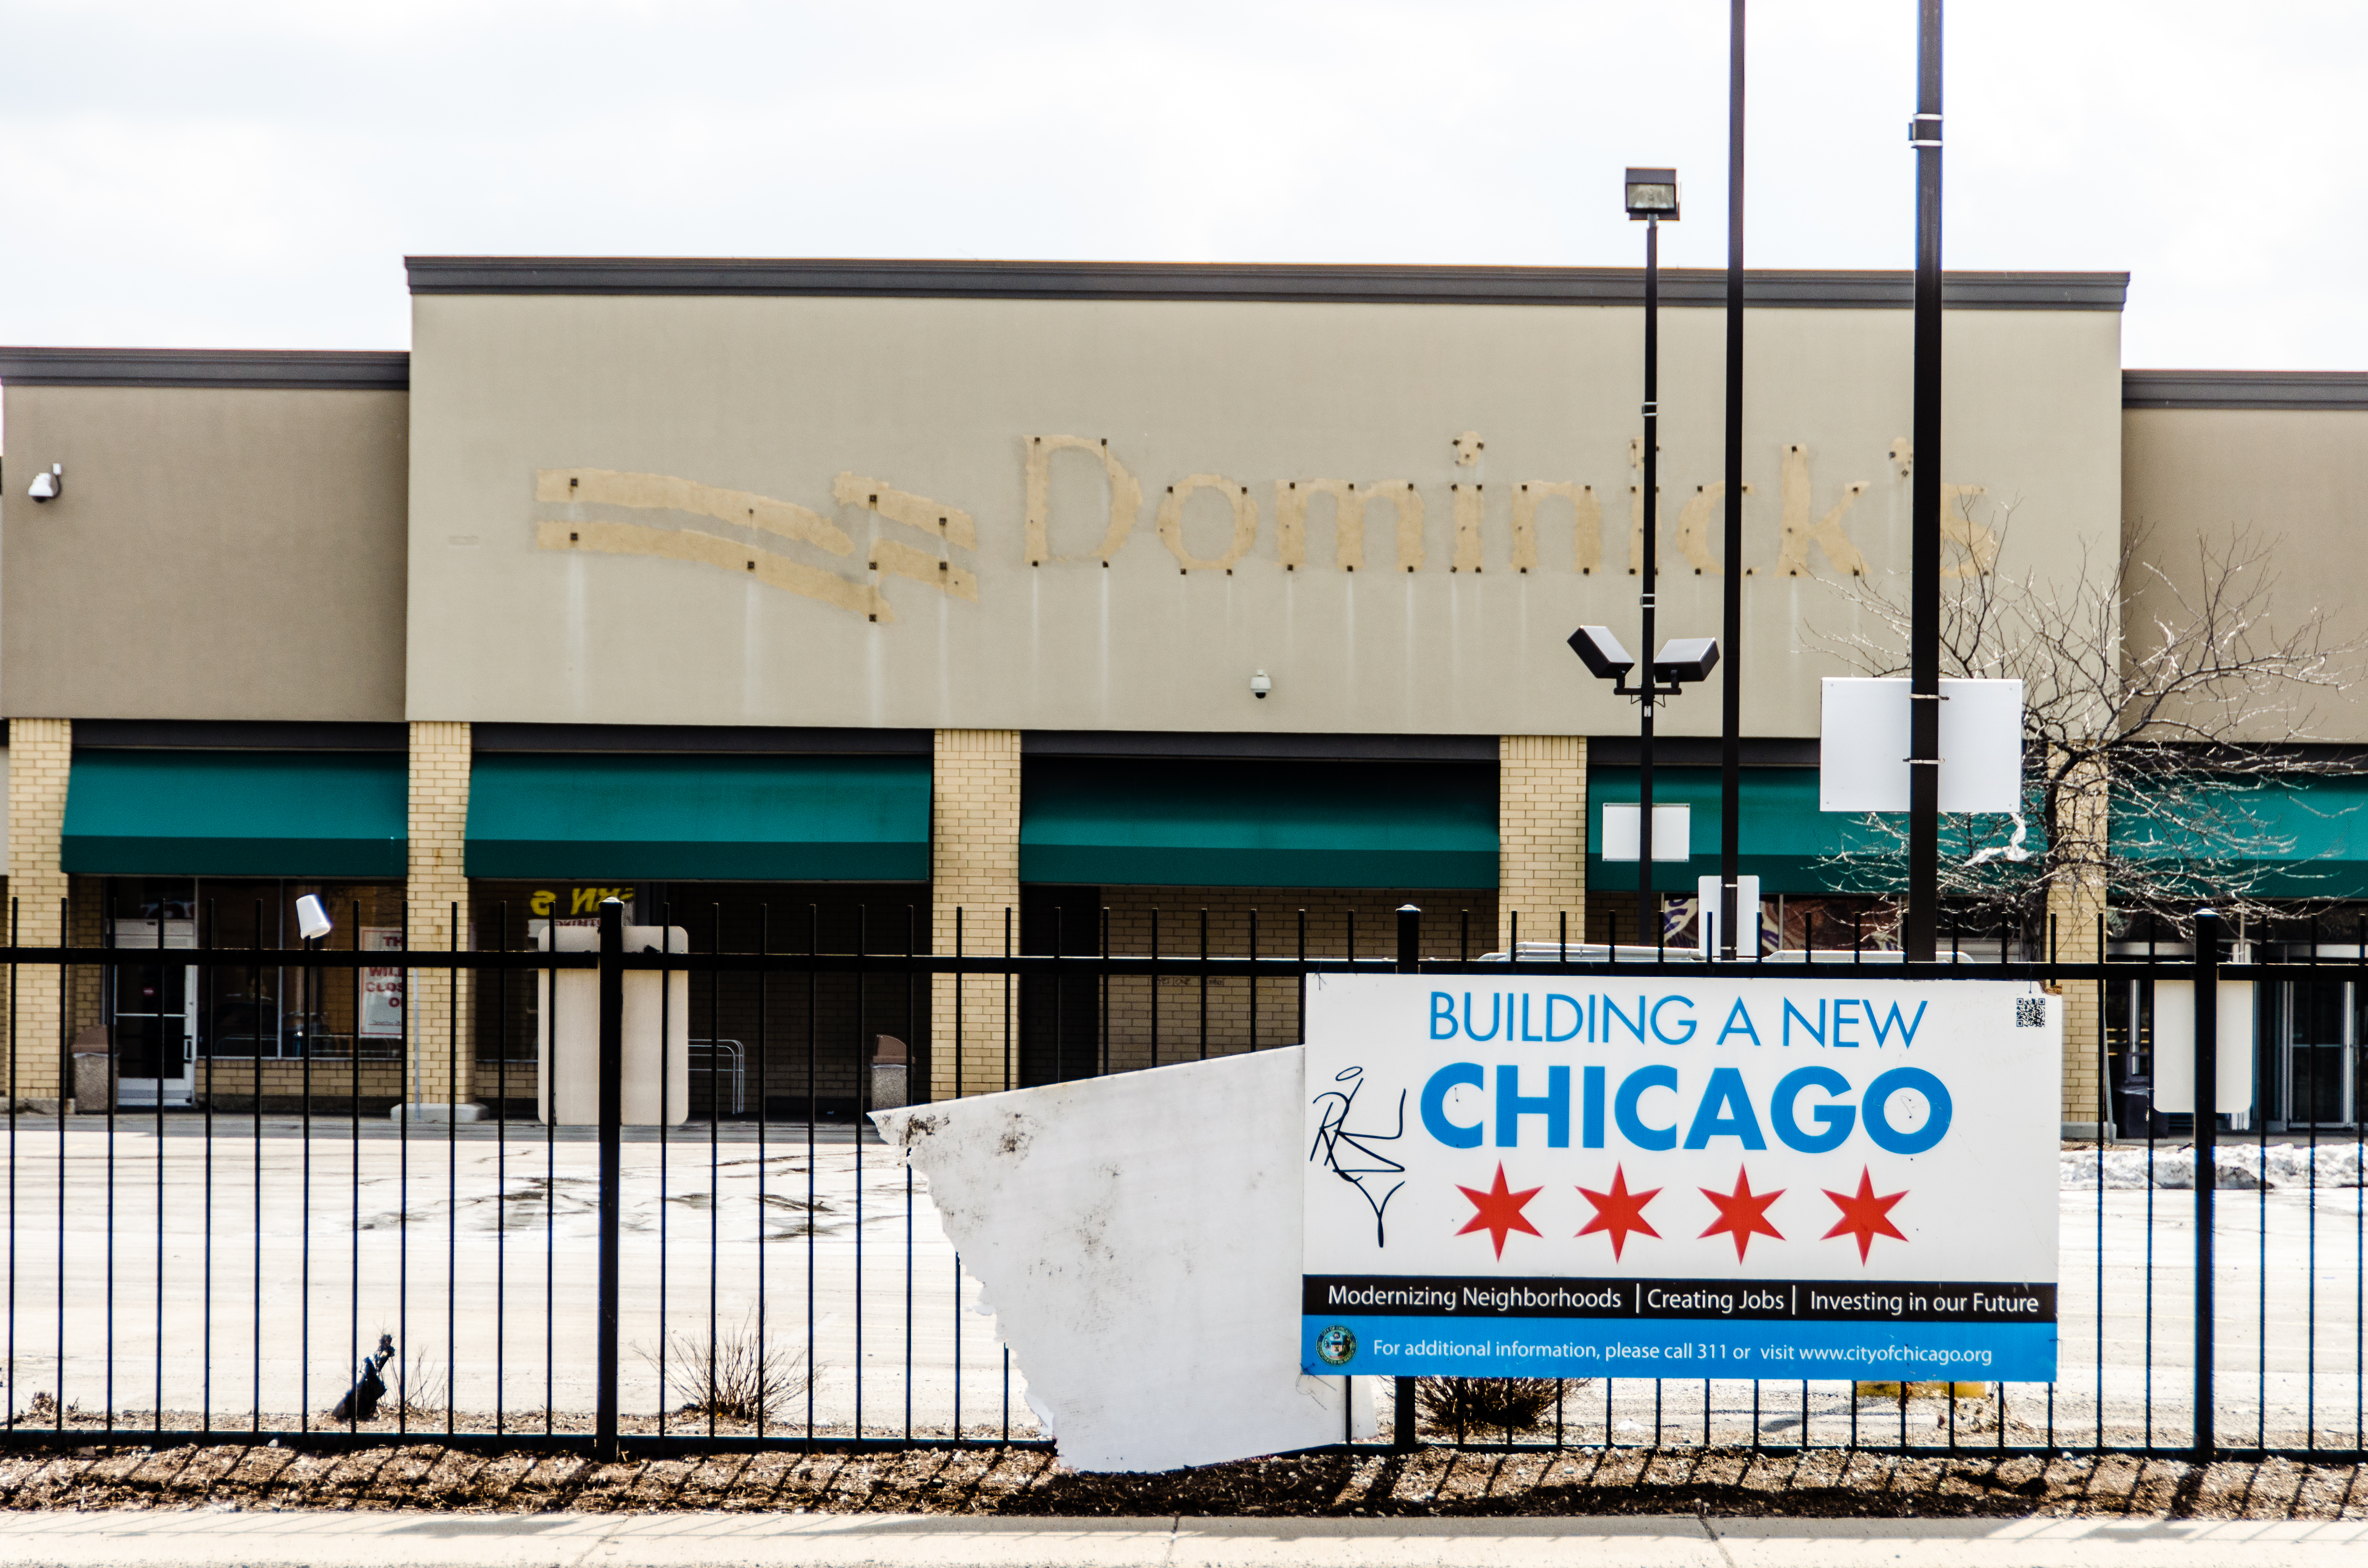 Build a New Chicago, one closed grocery store at a time